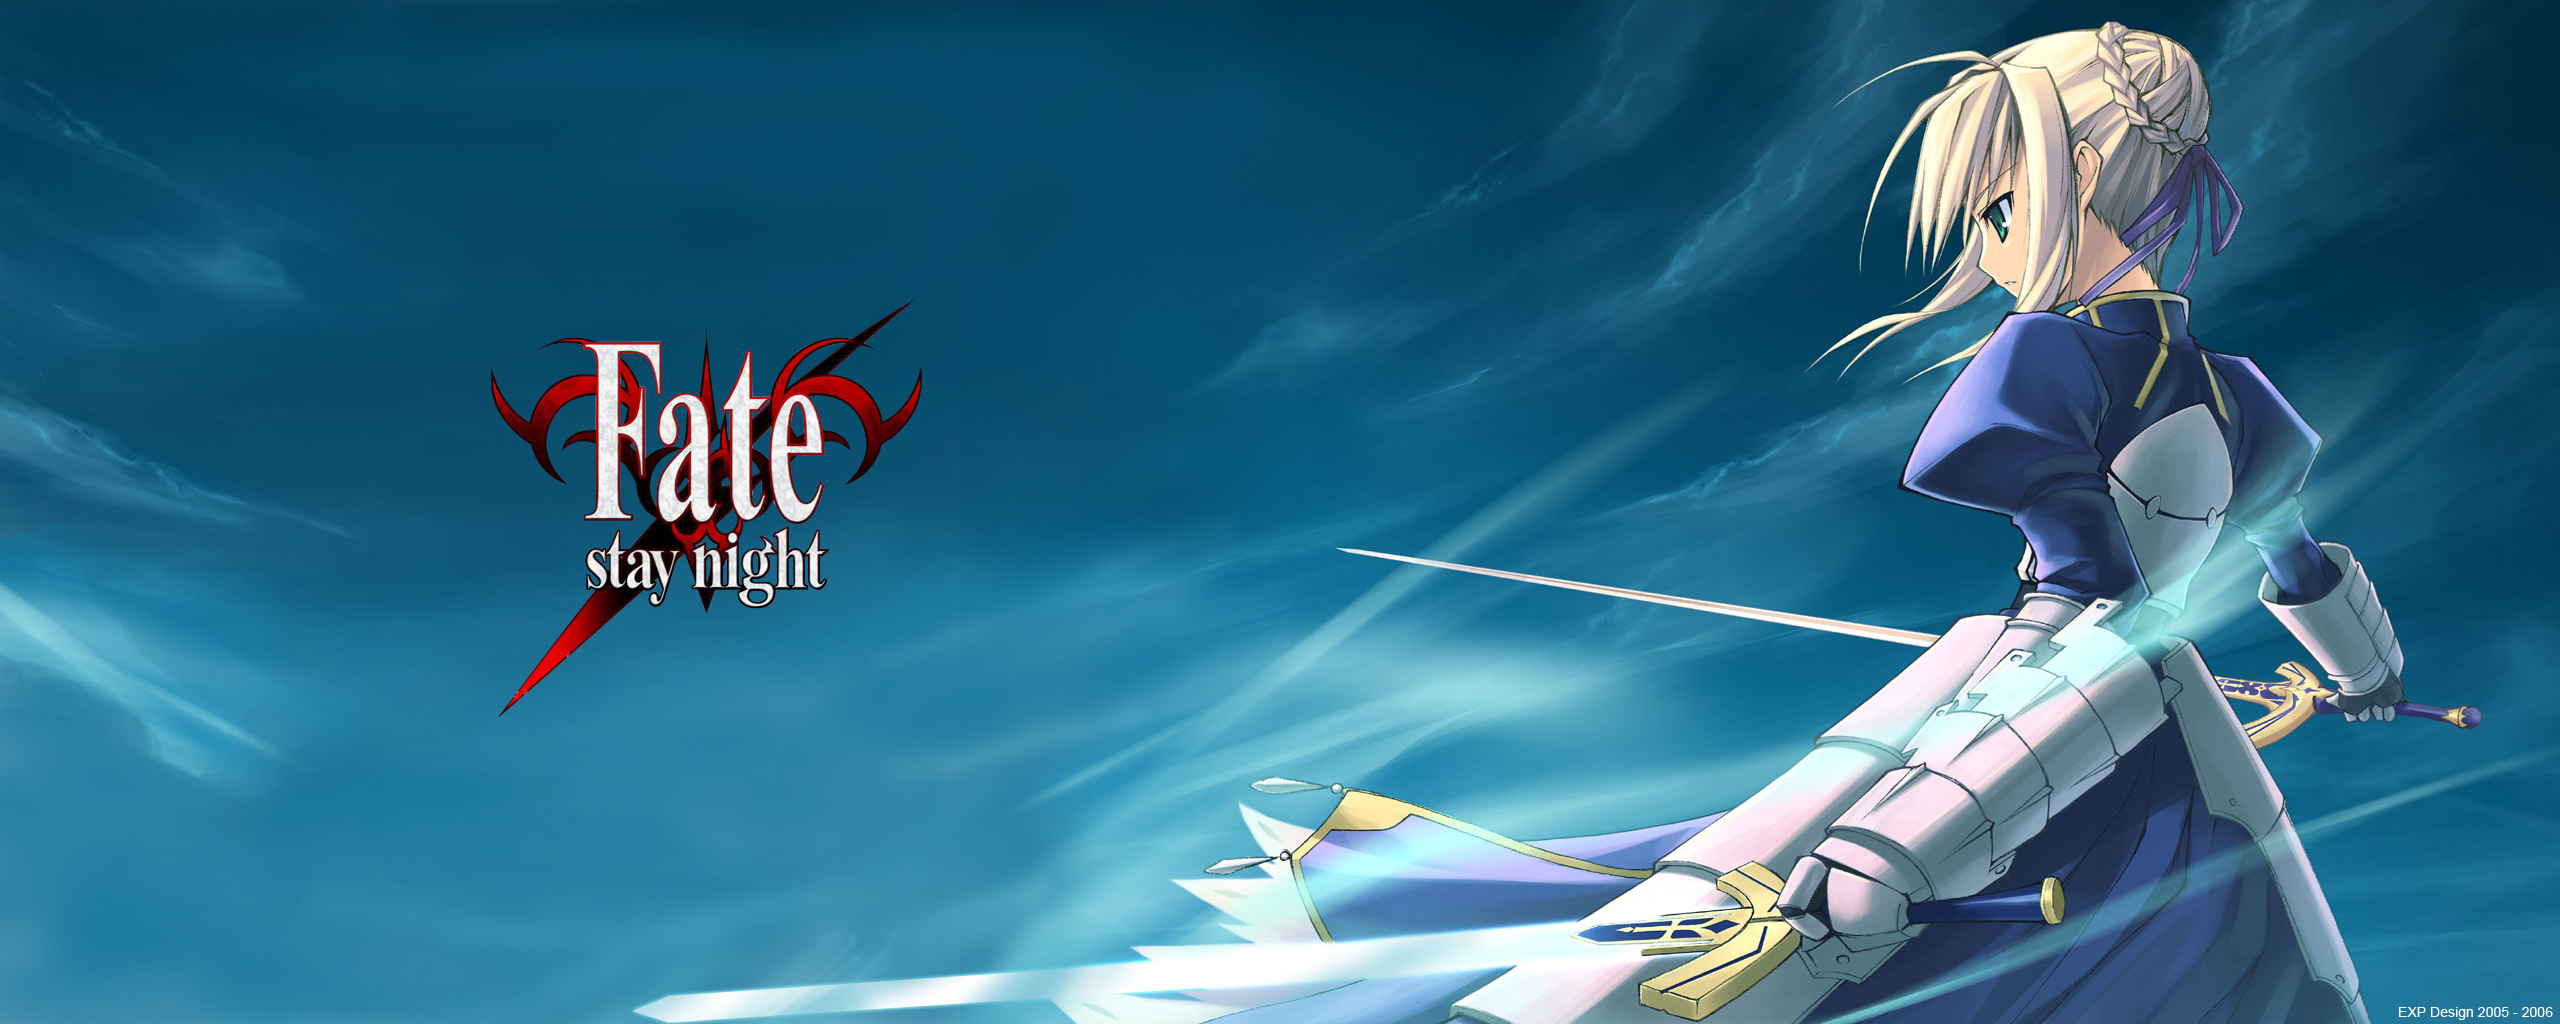 Muryou Anime Wallpaper Fate Stay Night Saber 2560x1024